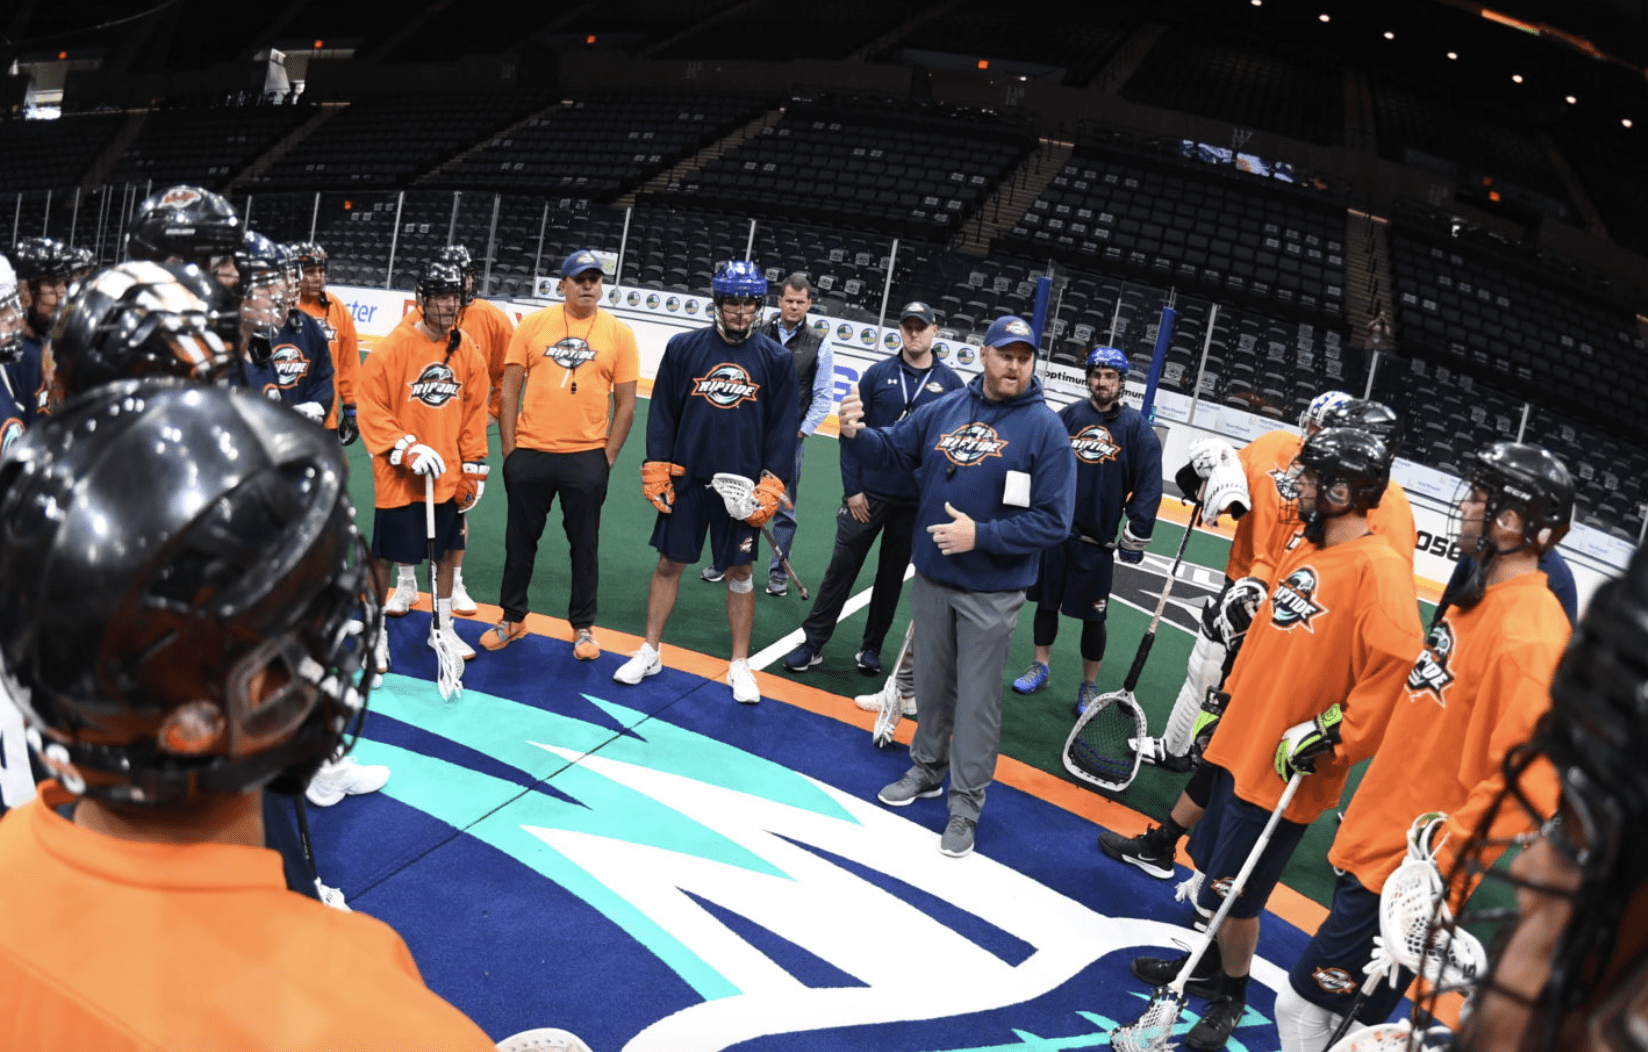 rich lisk new york riptide regy thorpe nll national lacrosse league